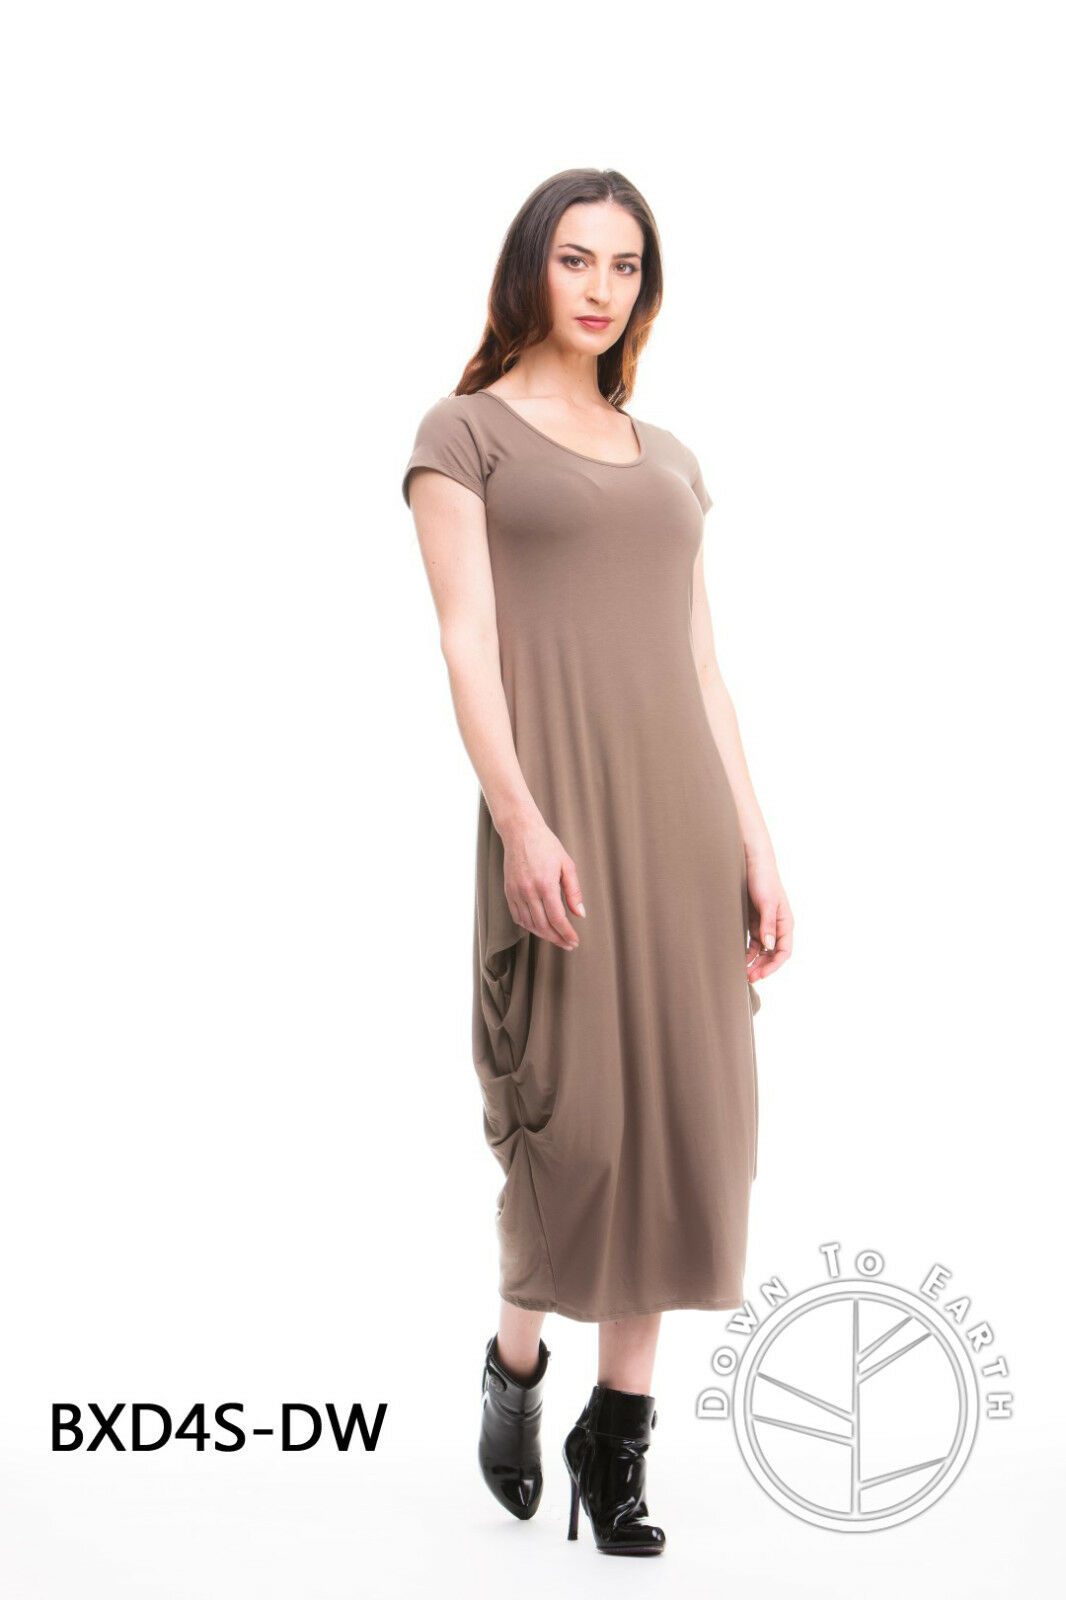 NEW COFFEE BAMBOO LONG DOWN TO EARTH DRESS SIZES 8,14,16